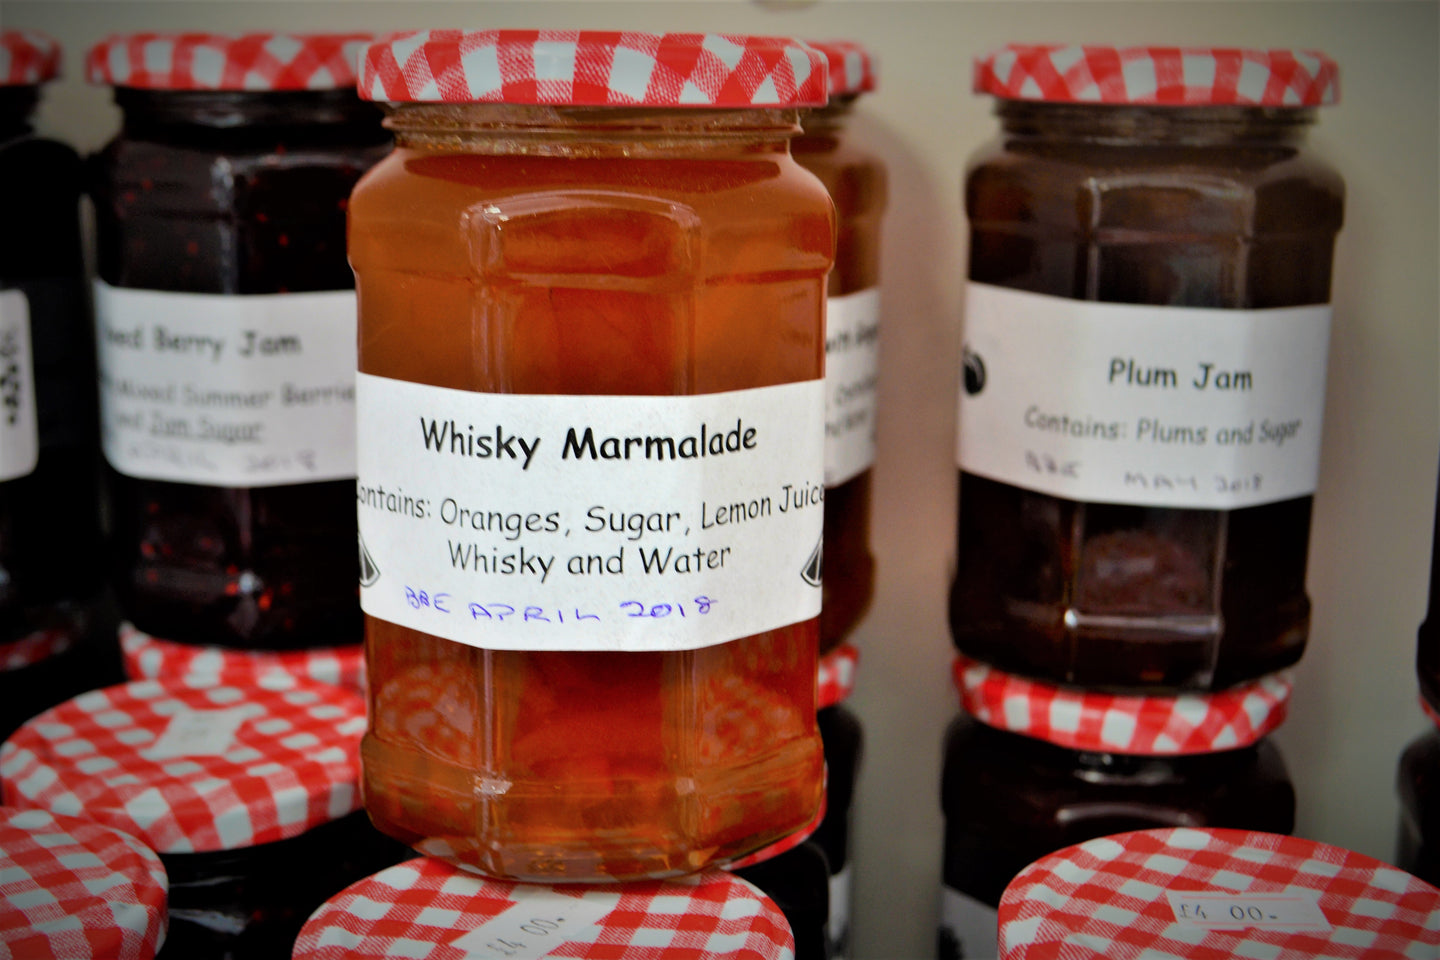 Jams, Chutneys and Marmalade